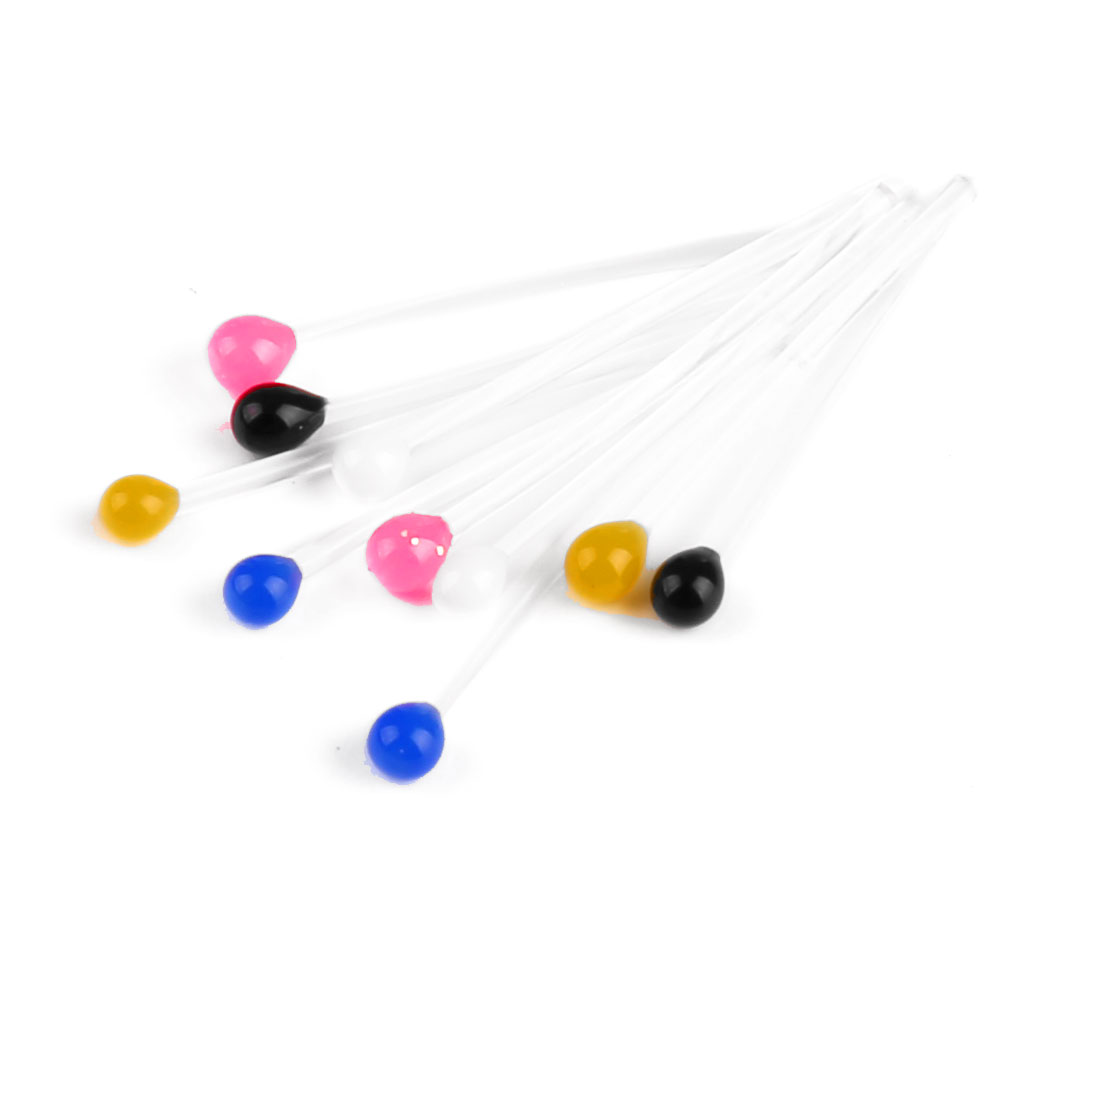 10 x 10 Packs Colorful Ball Head Plastic Ear Studs Earrings for Ladies